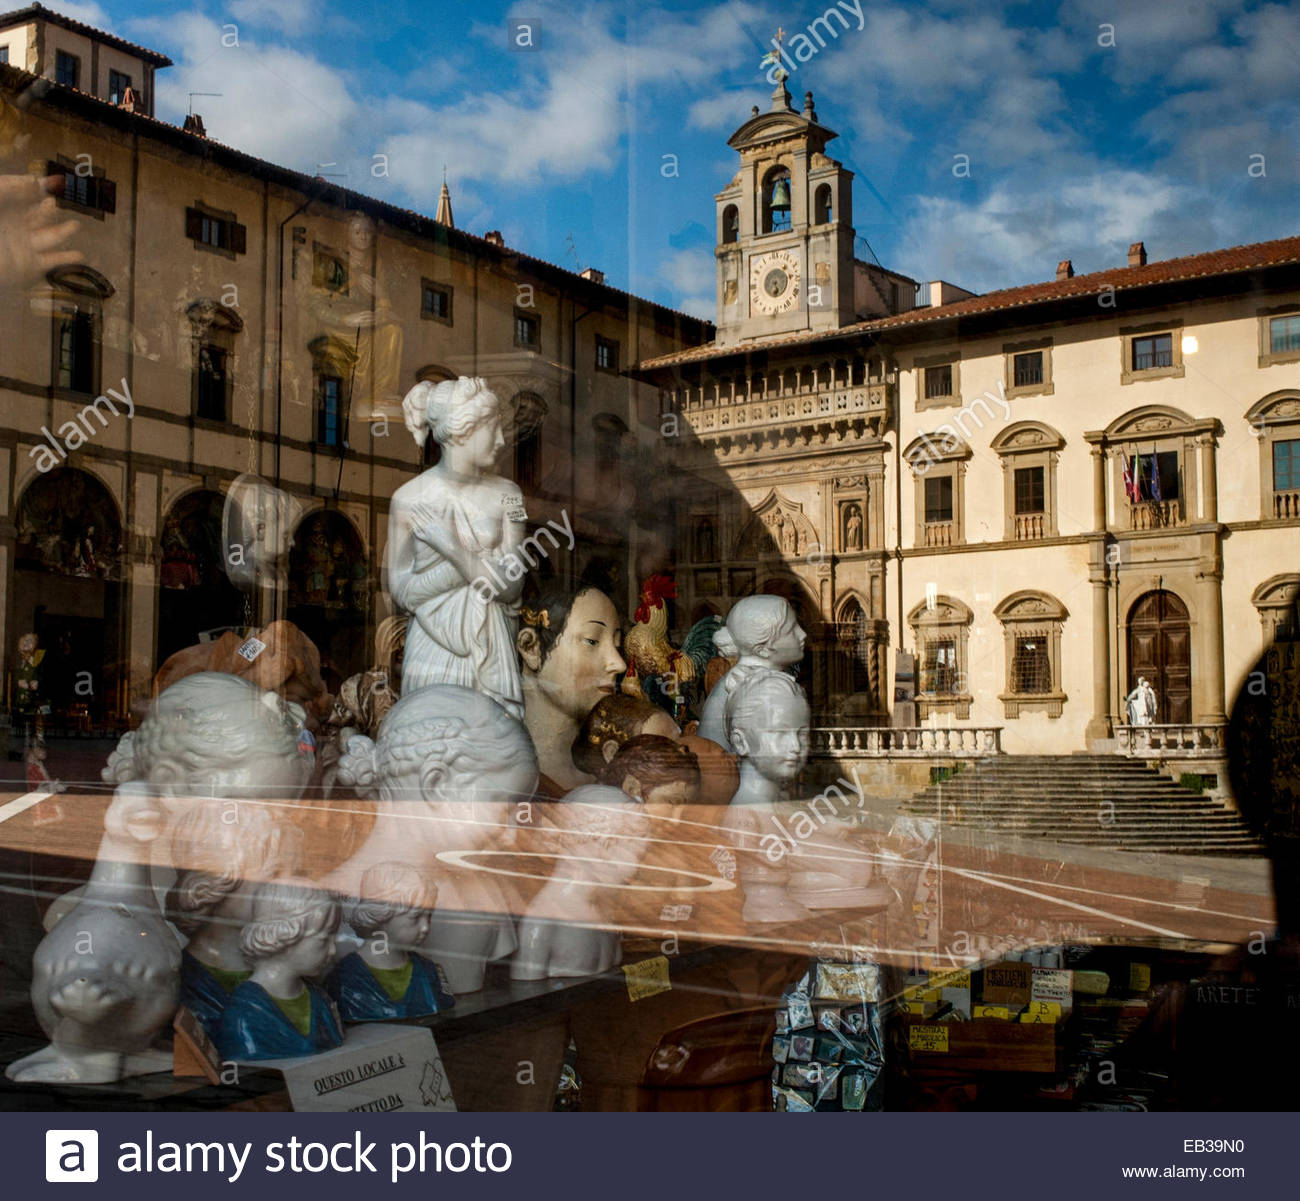 Busts of women and other sculpture in the window of an antique shop on the Piazza Grande. - Stock Image